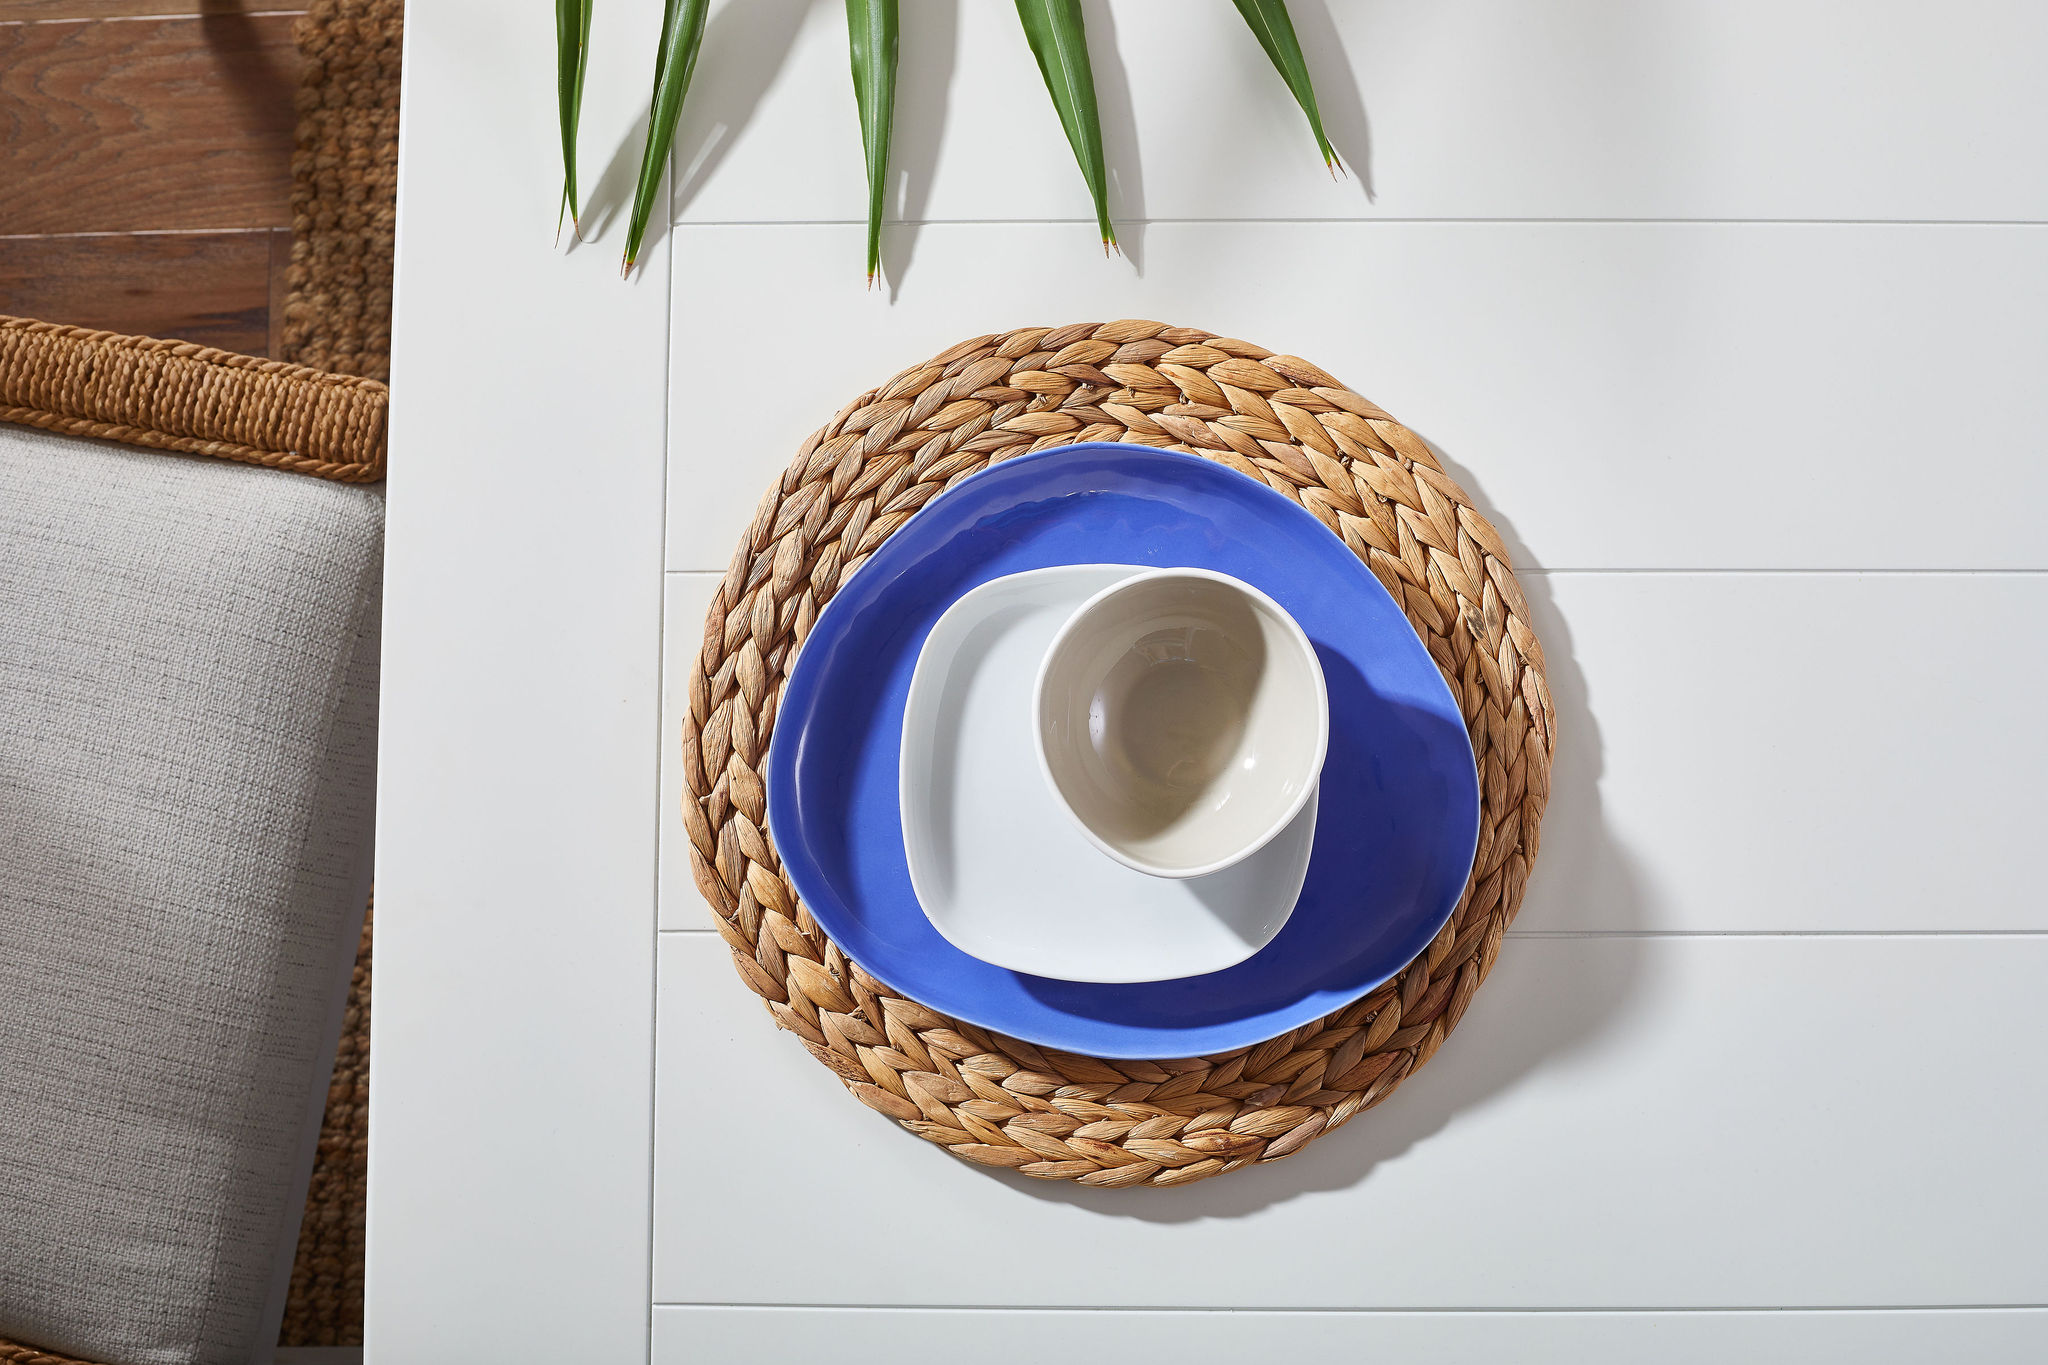 Woven placemat with a blue plate, white side plate and white bowl on top